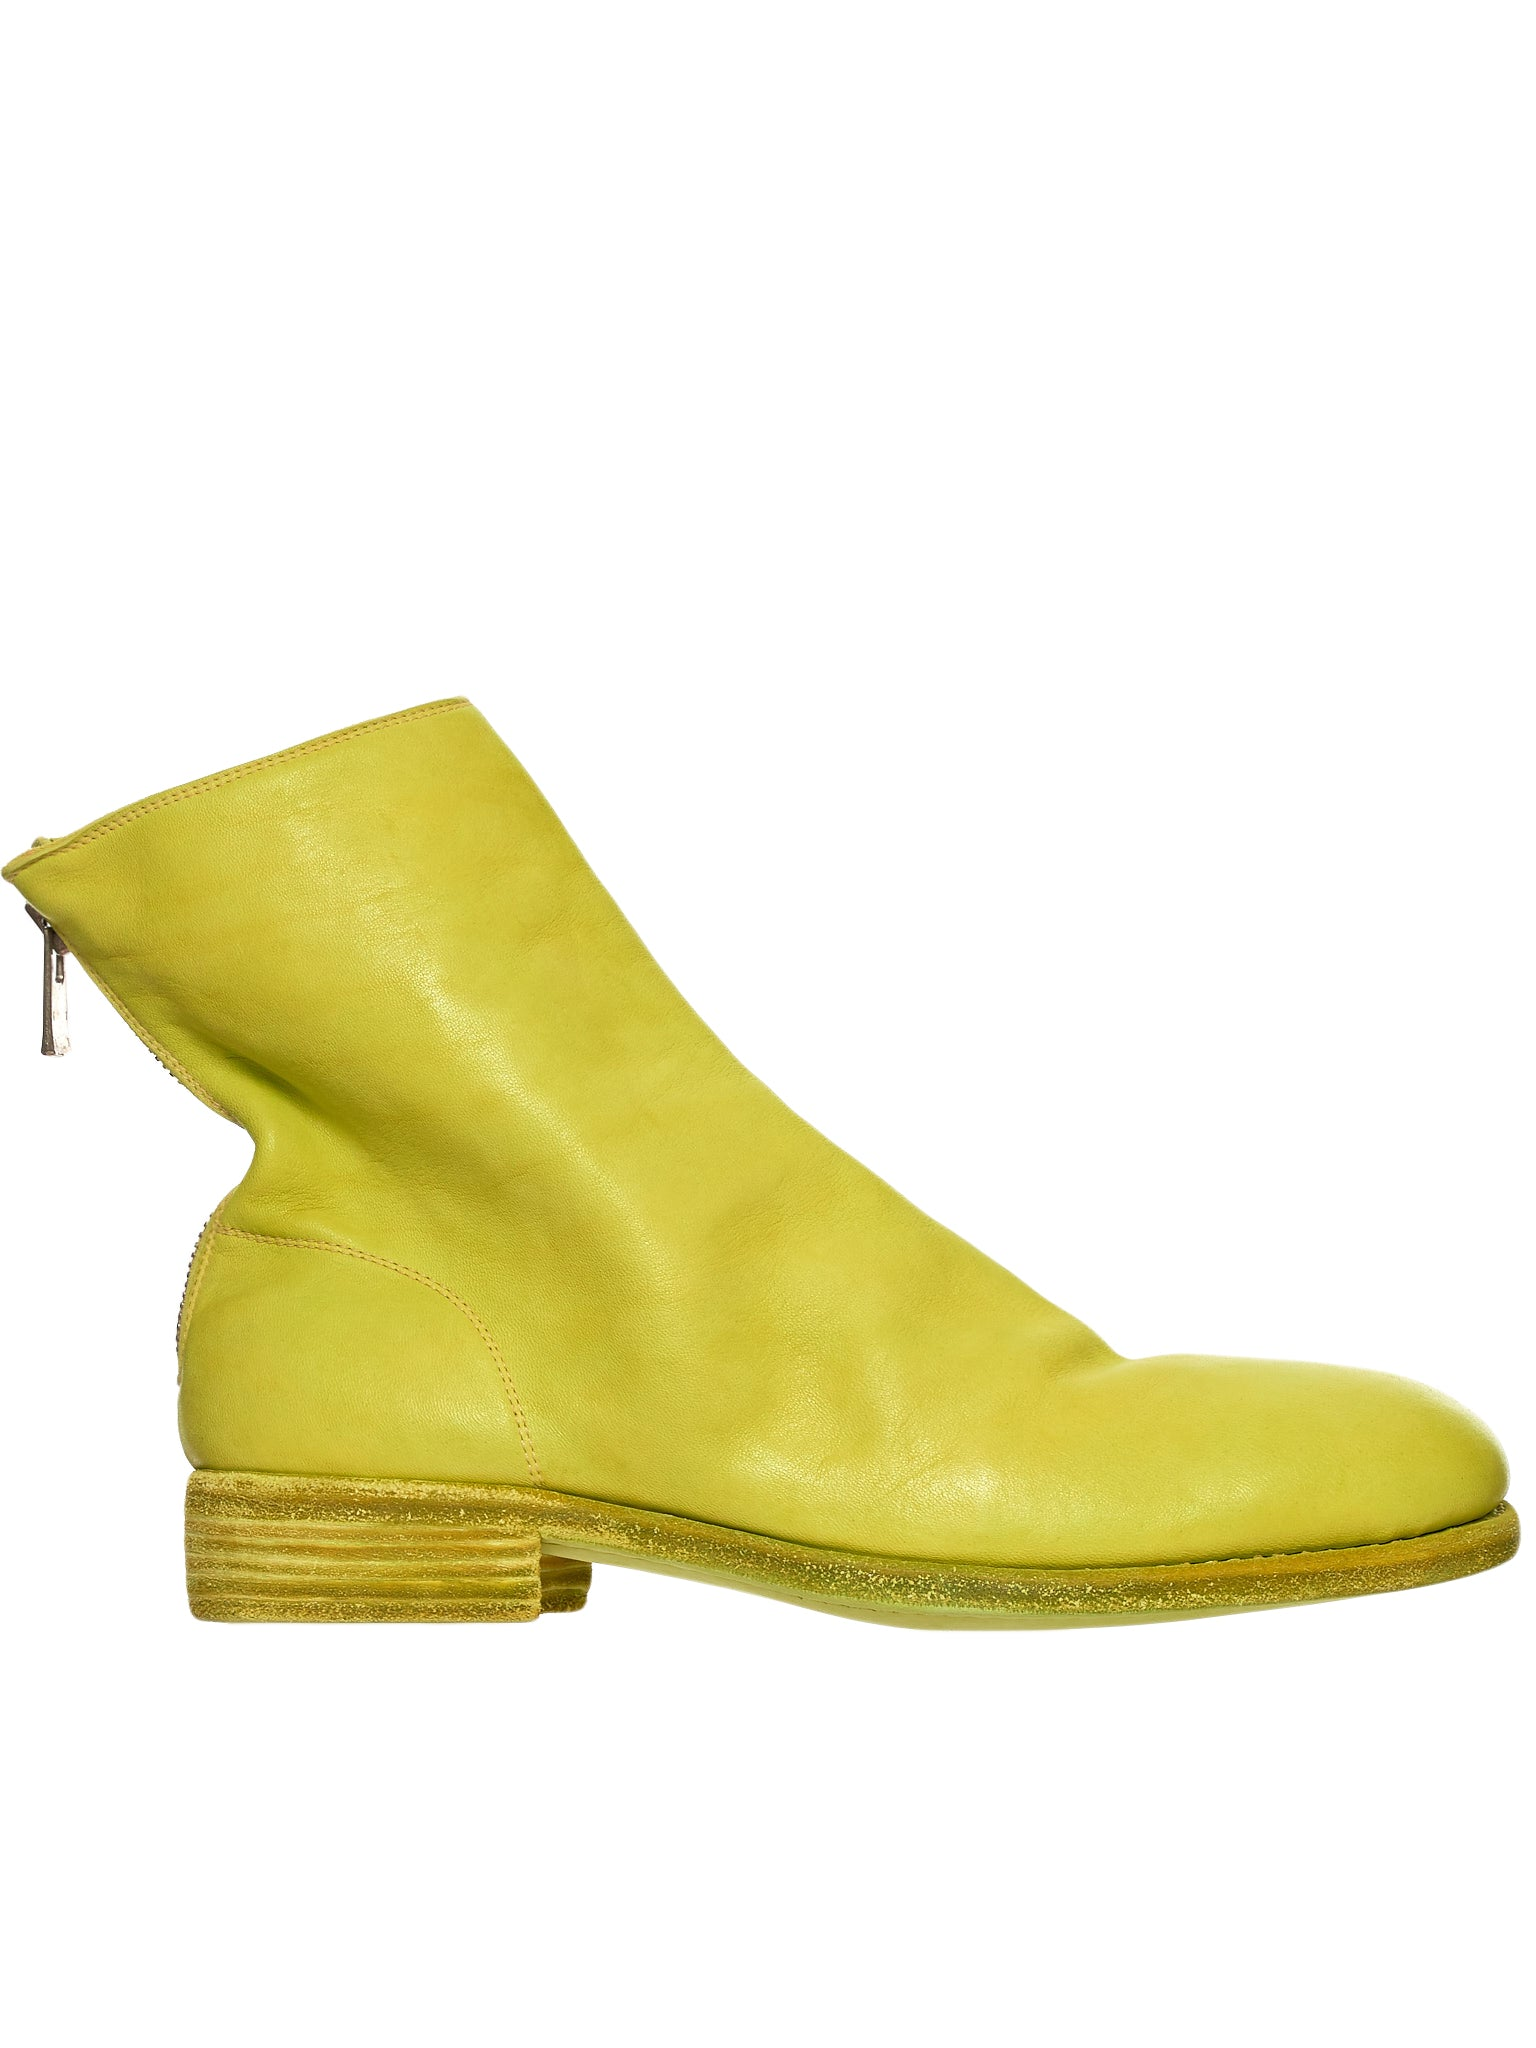 Guidi 986 Yellow Boot - Hlorenzo Front